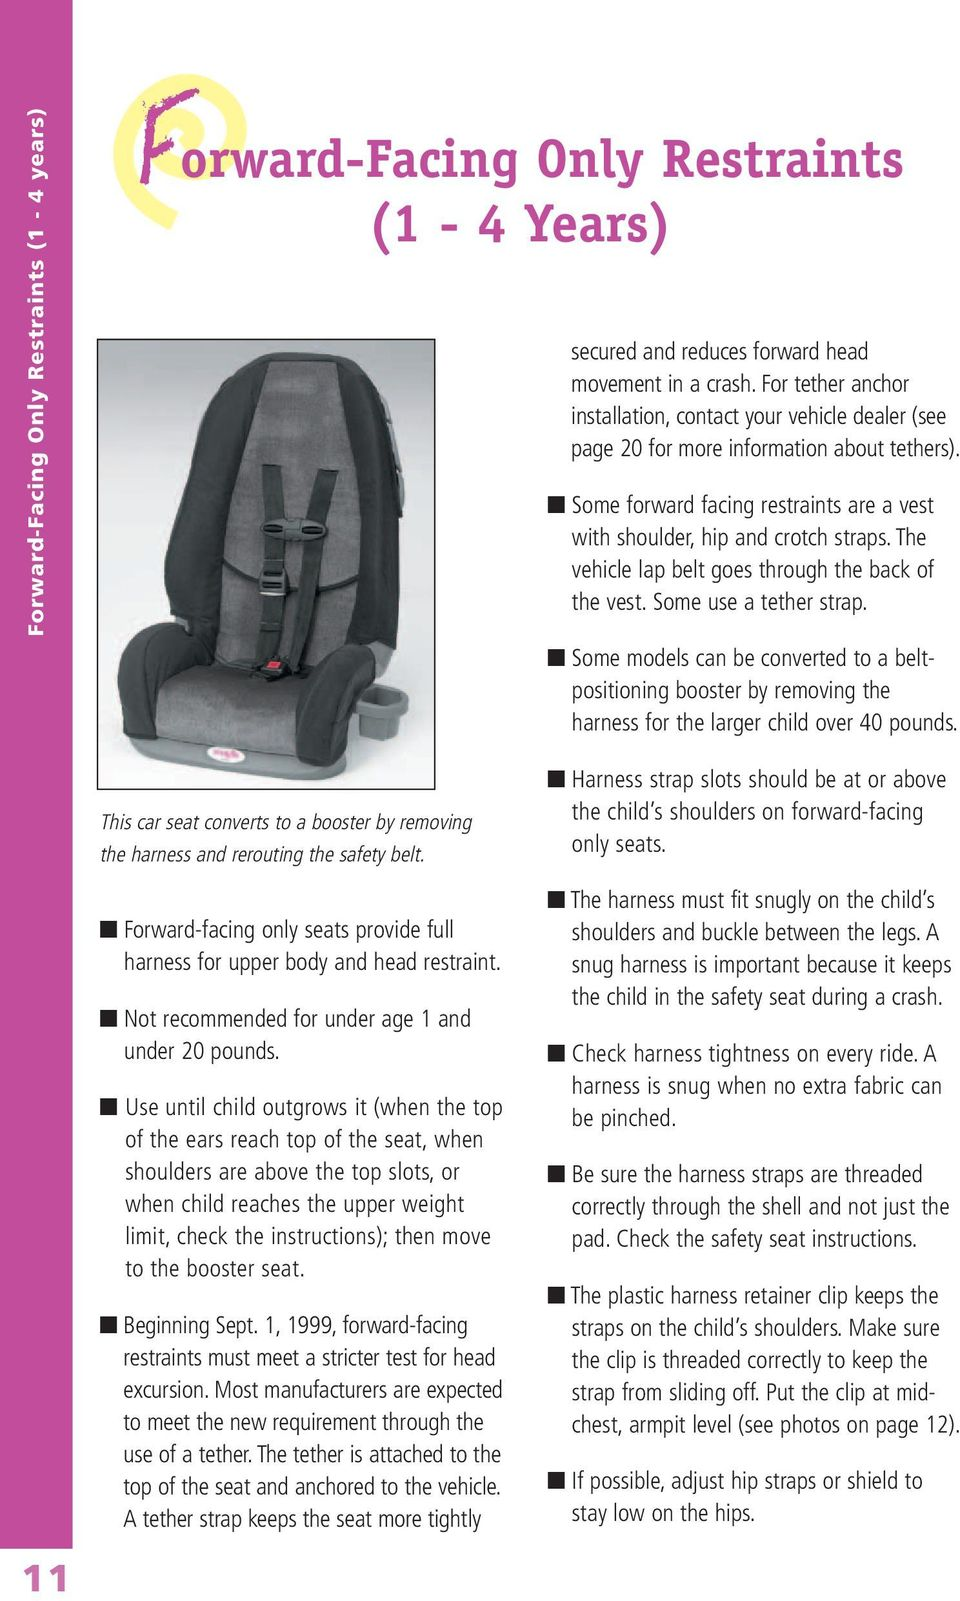 The vehicle lap belt goes through the back of the vest. Some use a tether strap. Some models can be converted to a beltpositioning booster by removing the harness for the larger child over 40 pounds.